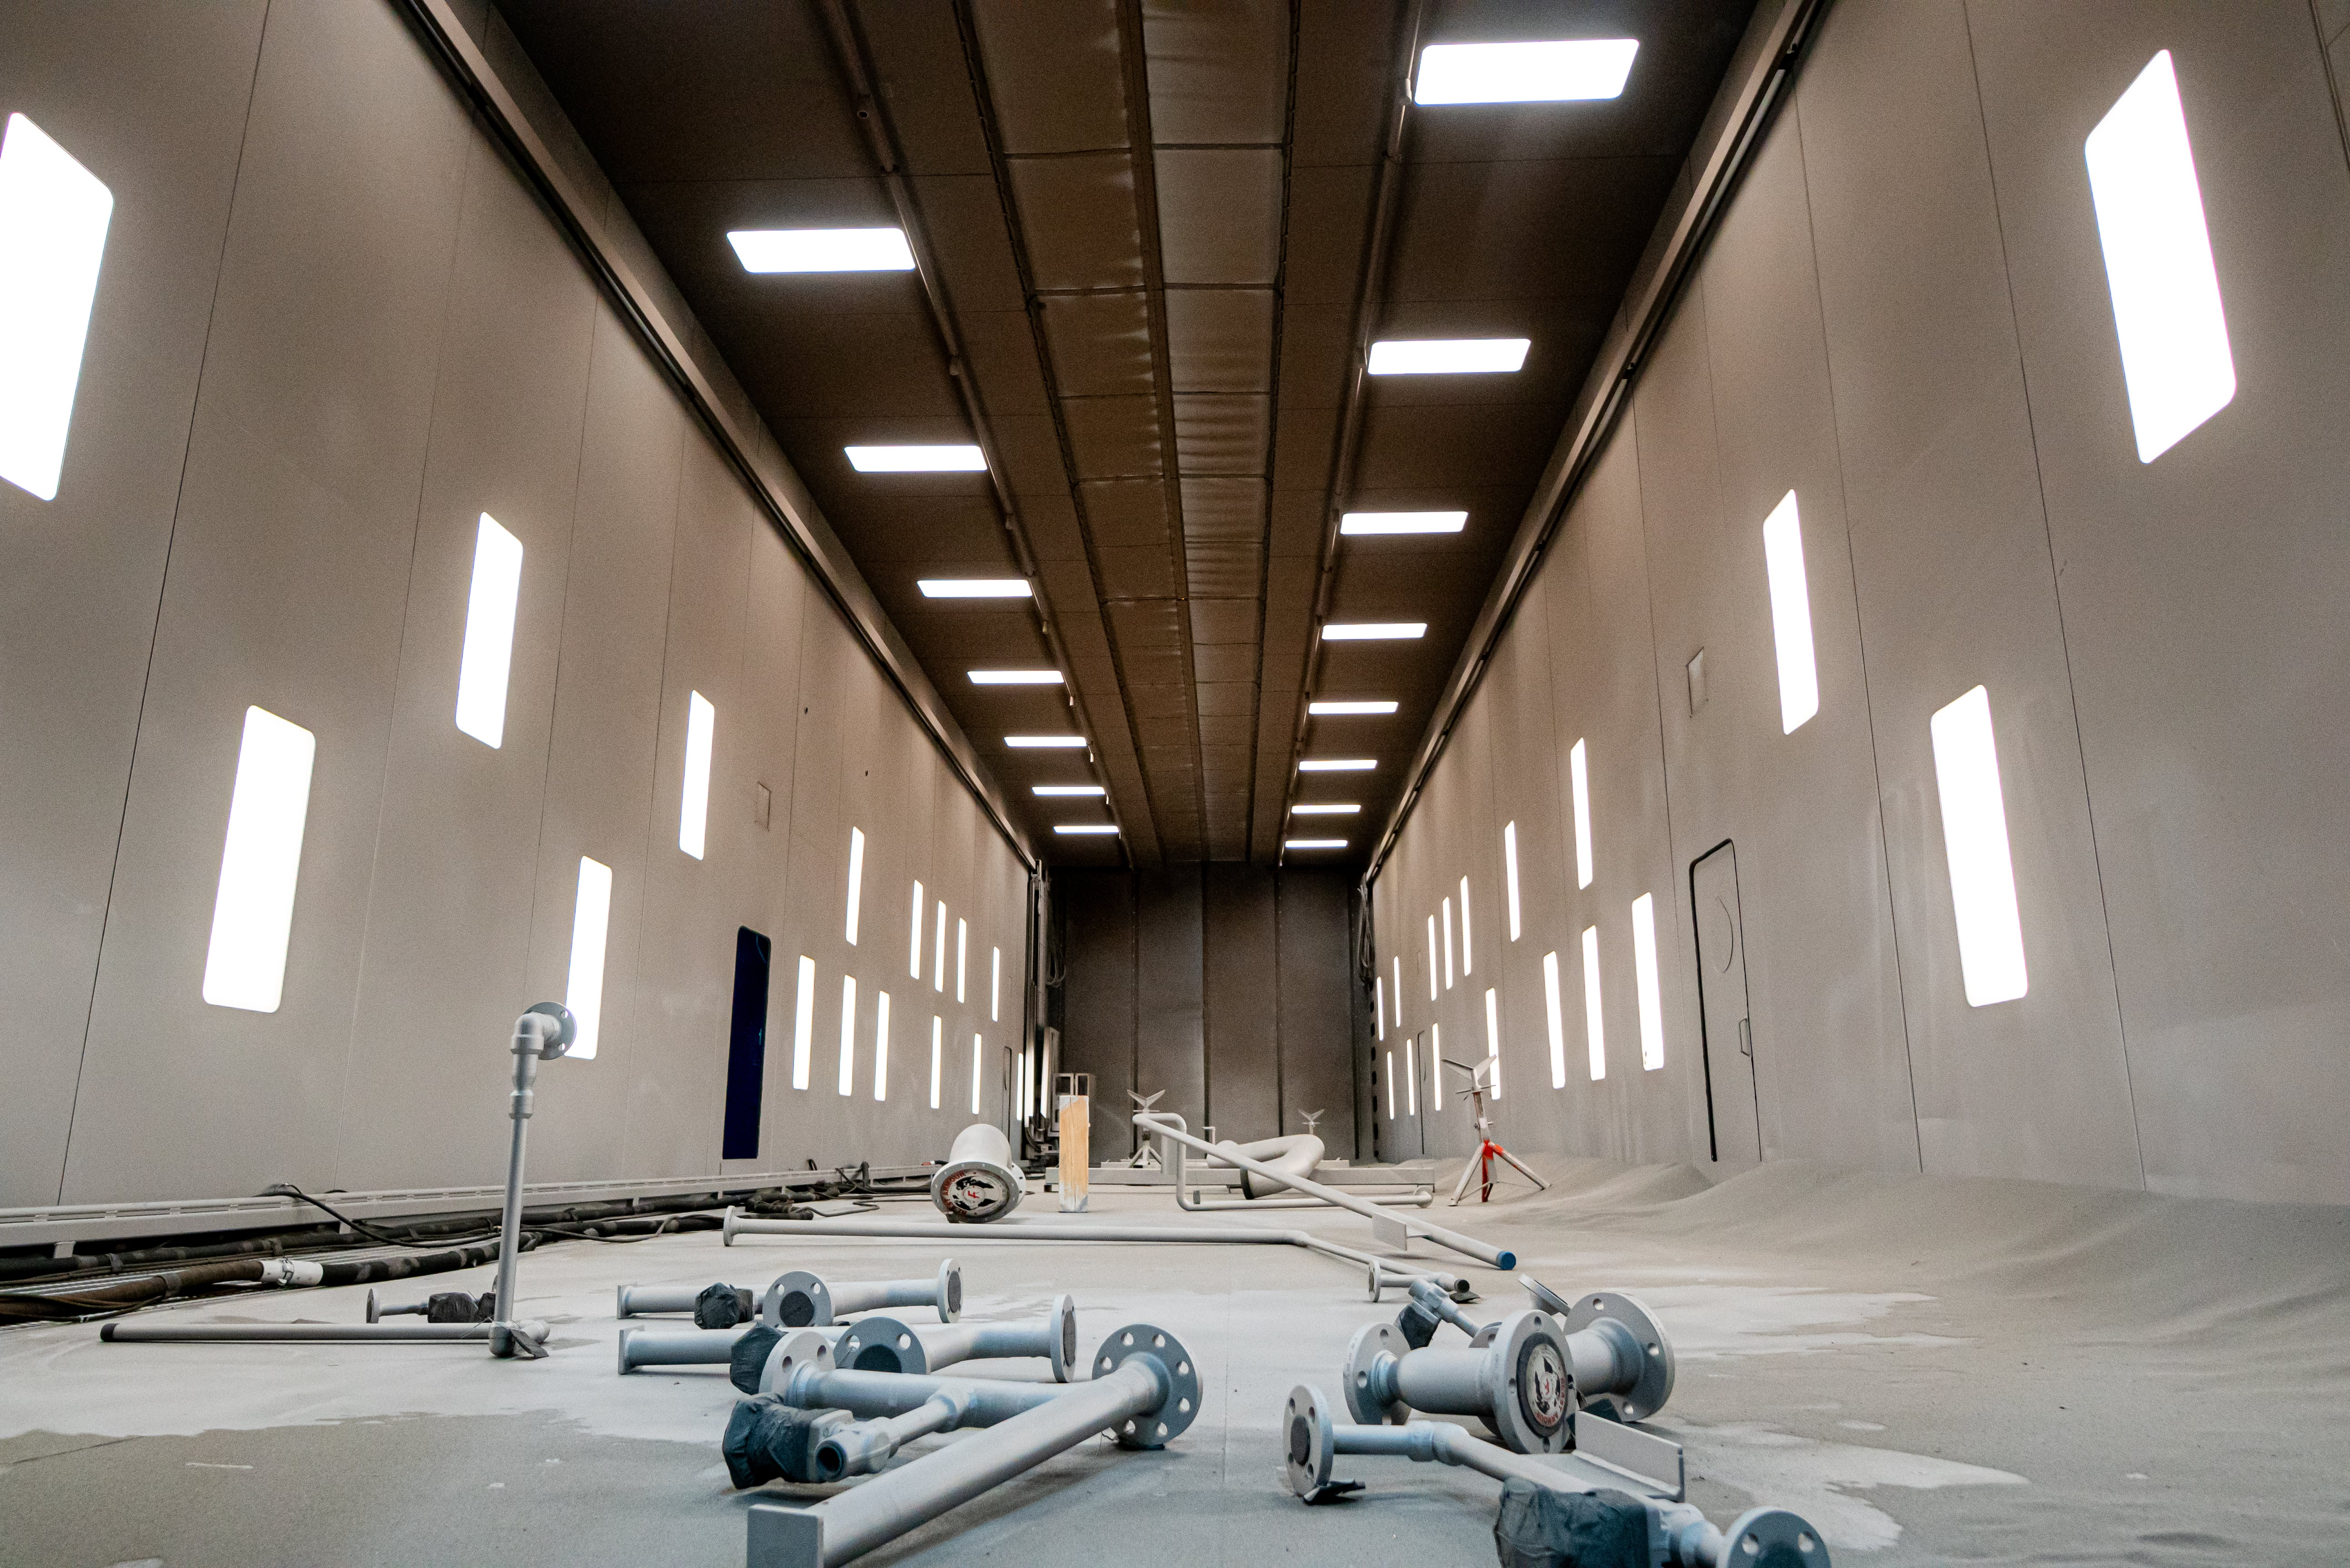 Interior of the Blasting and Coating Facility